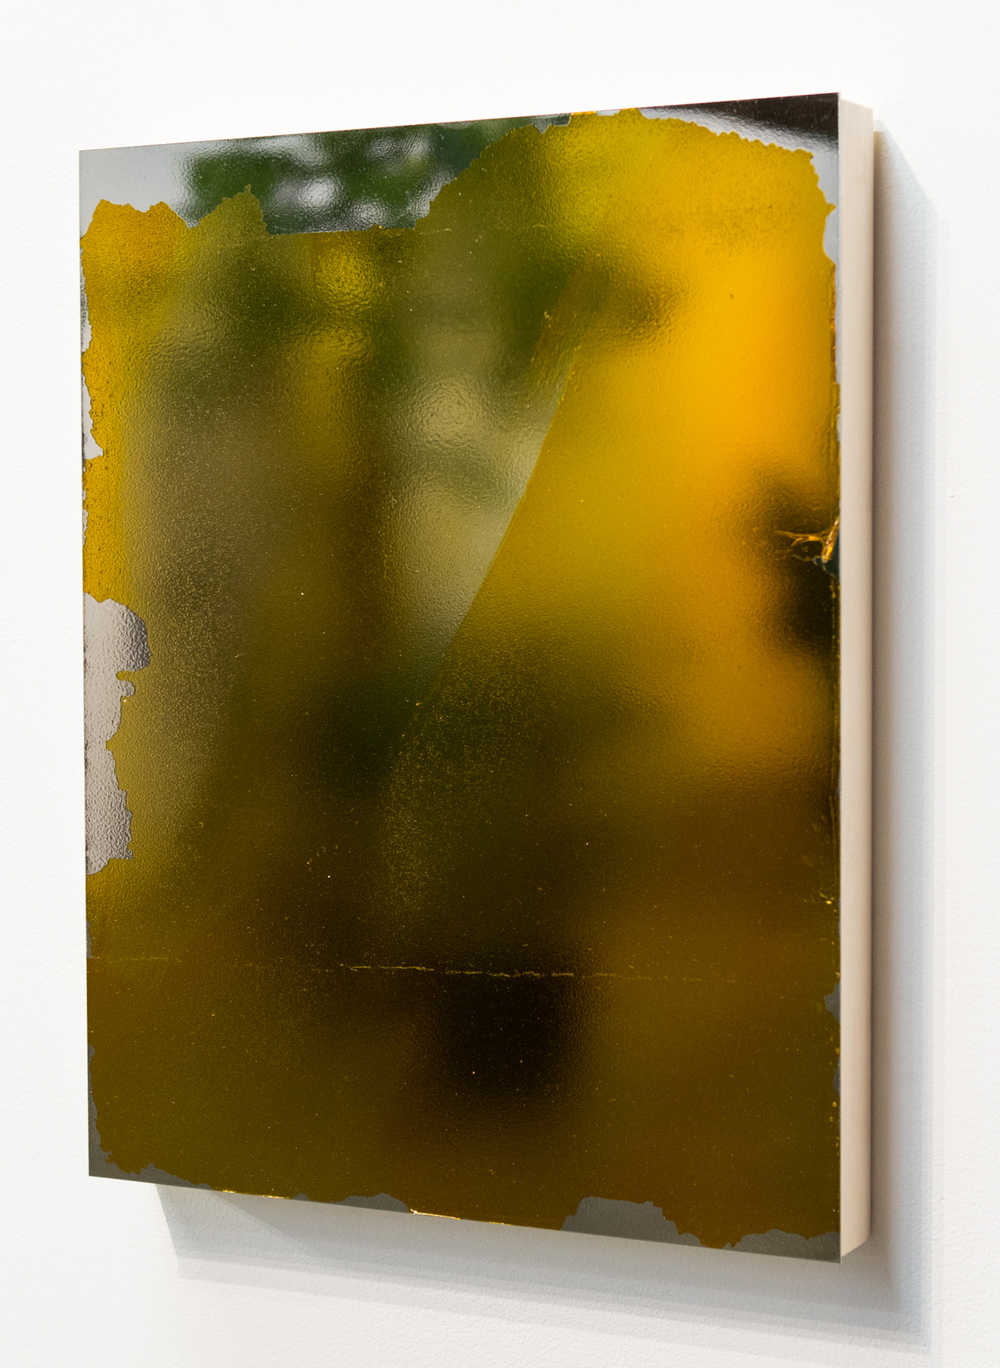 MLSL_12_Bunny, 2015  Gold tint on stainless steel  18 x 14 in (45.72 x 35.56 cm)